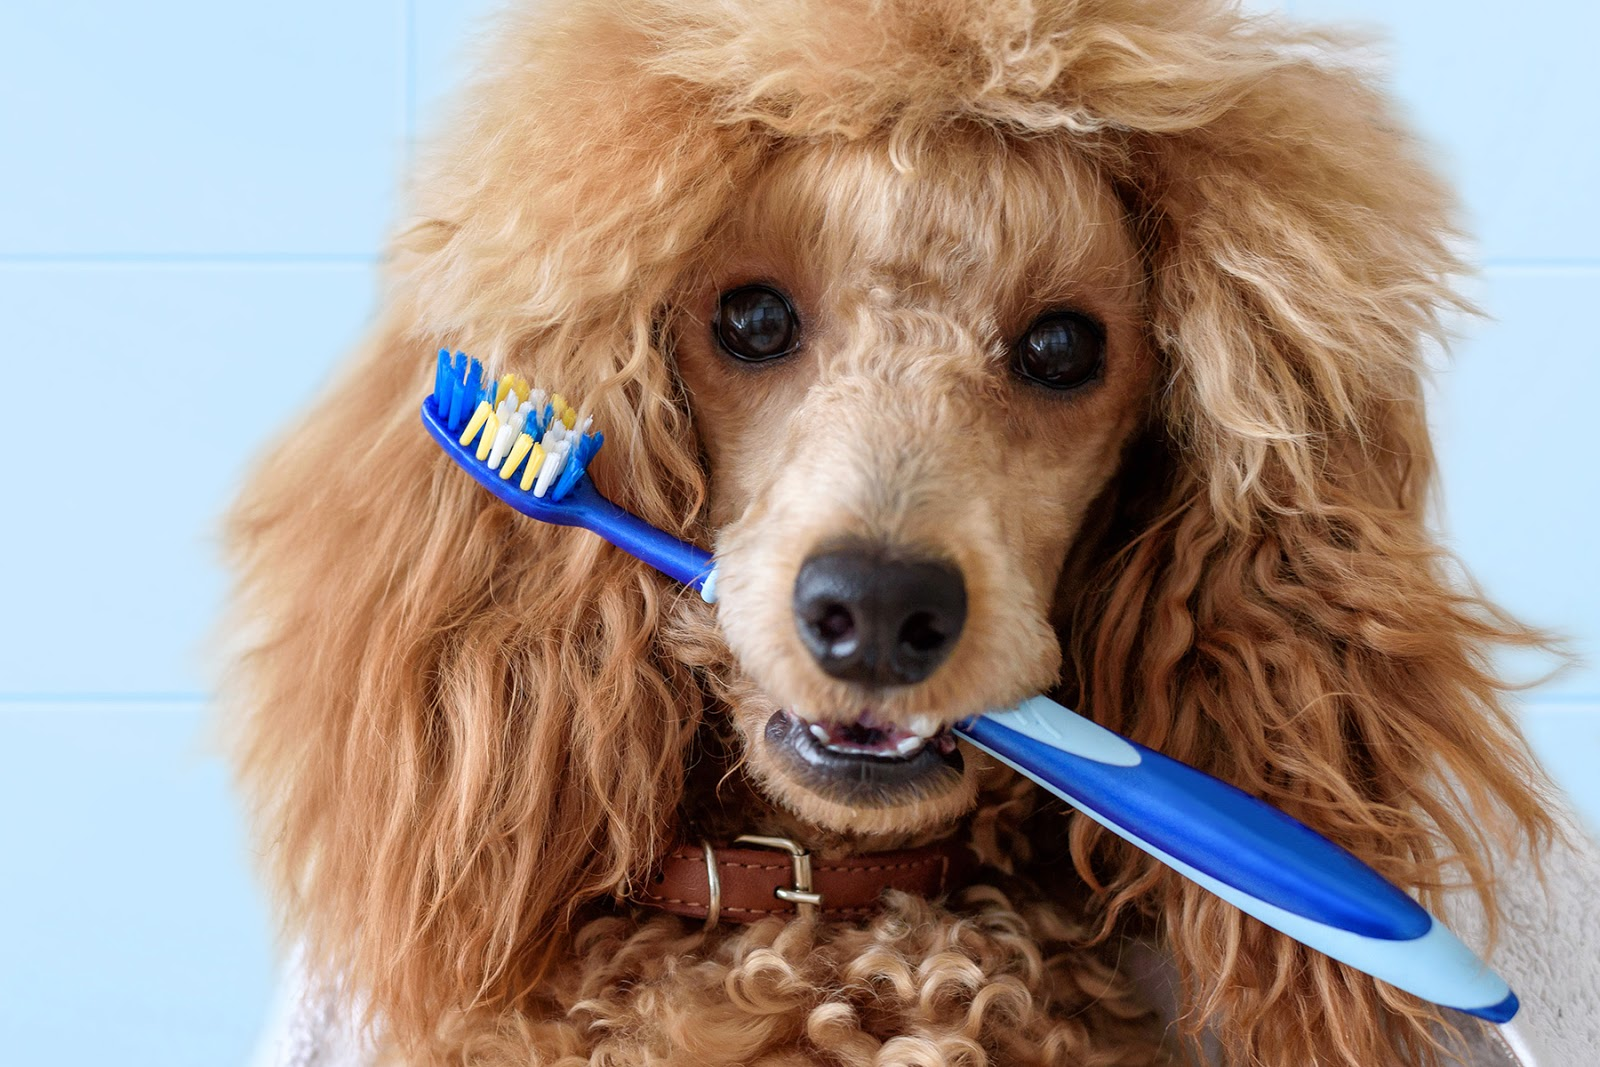 Toy Poodle biting on toothbrush